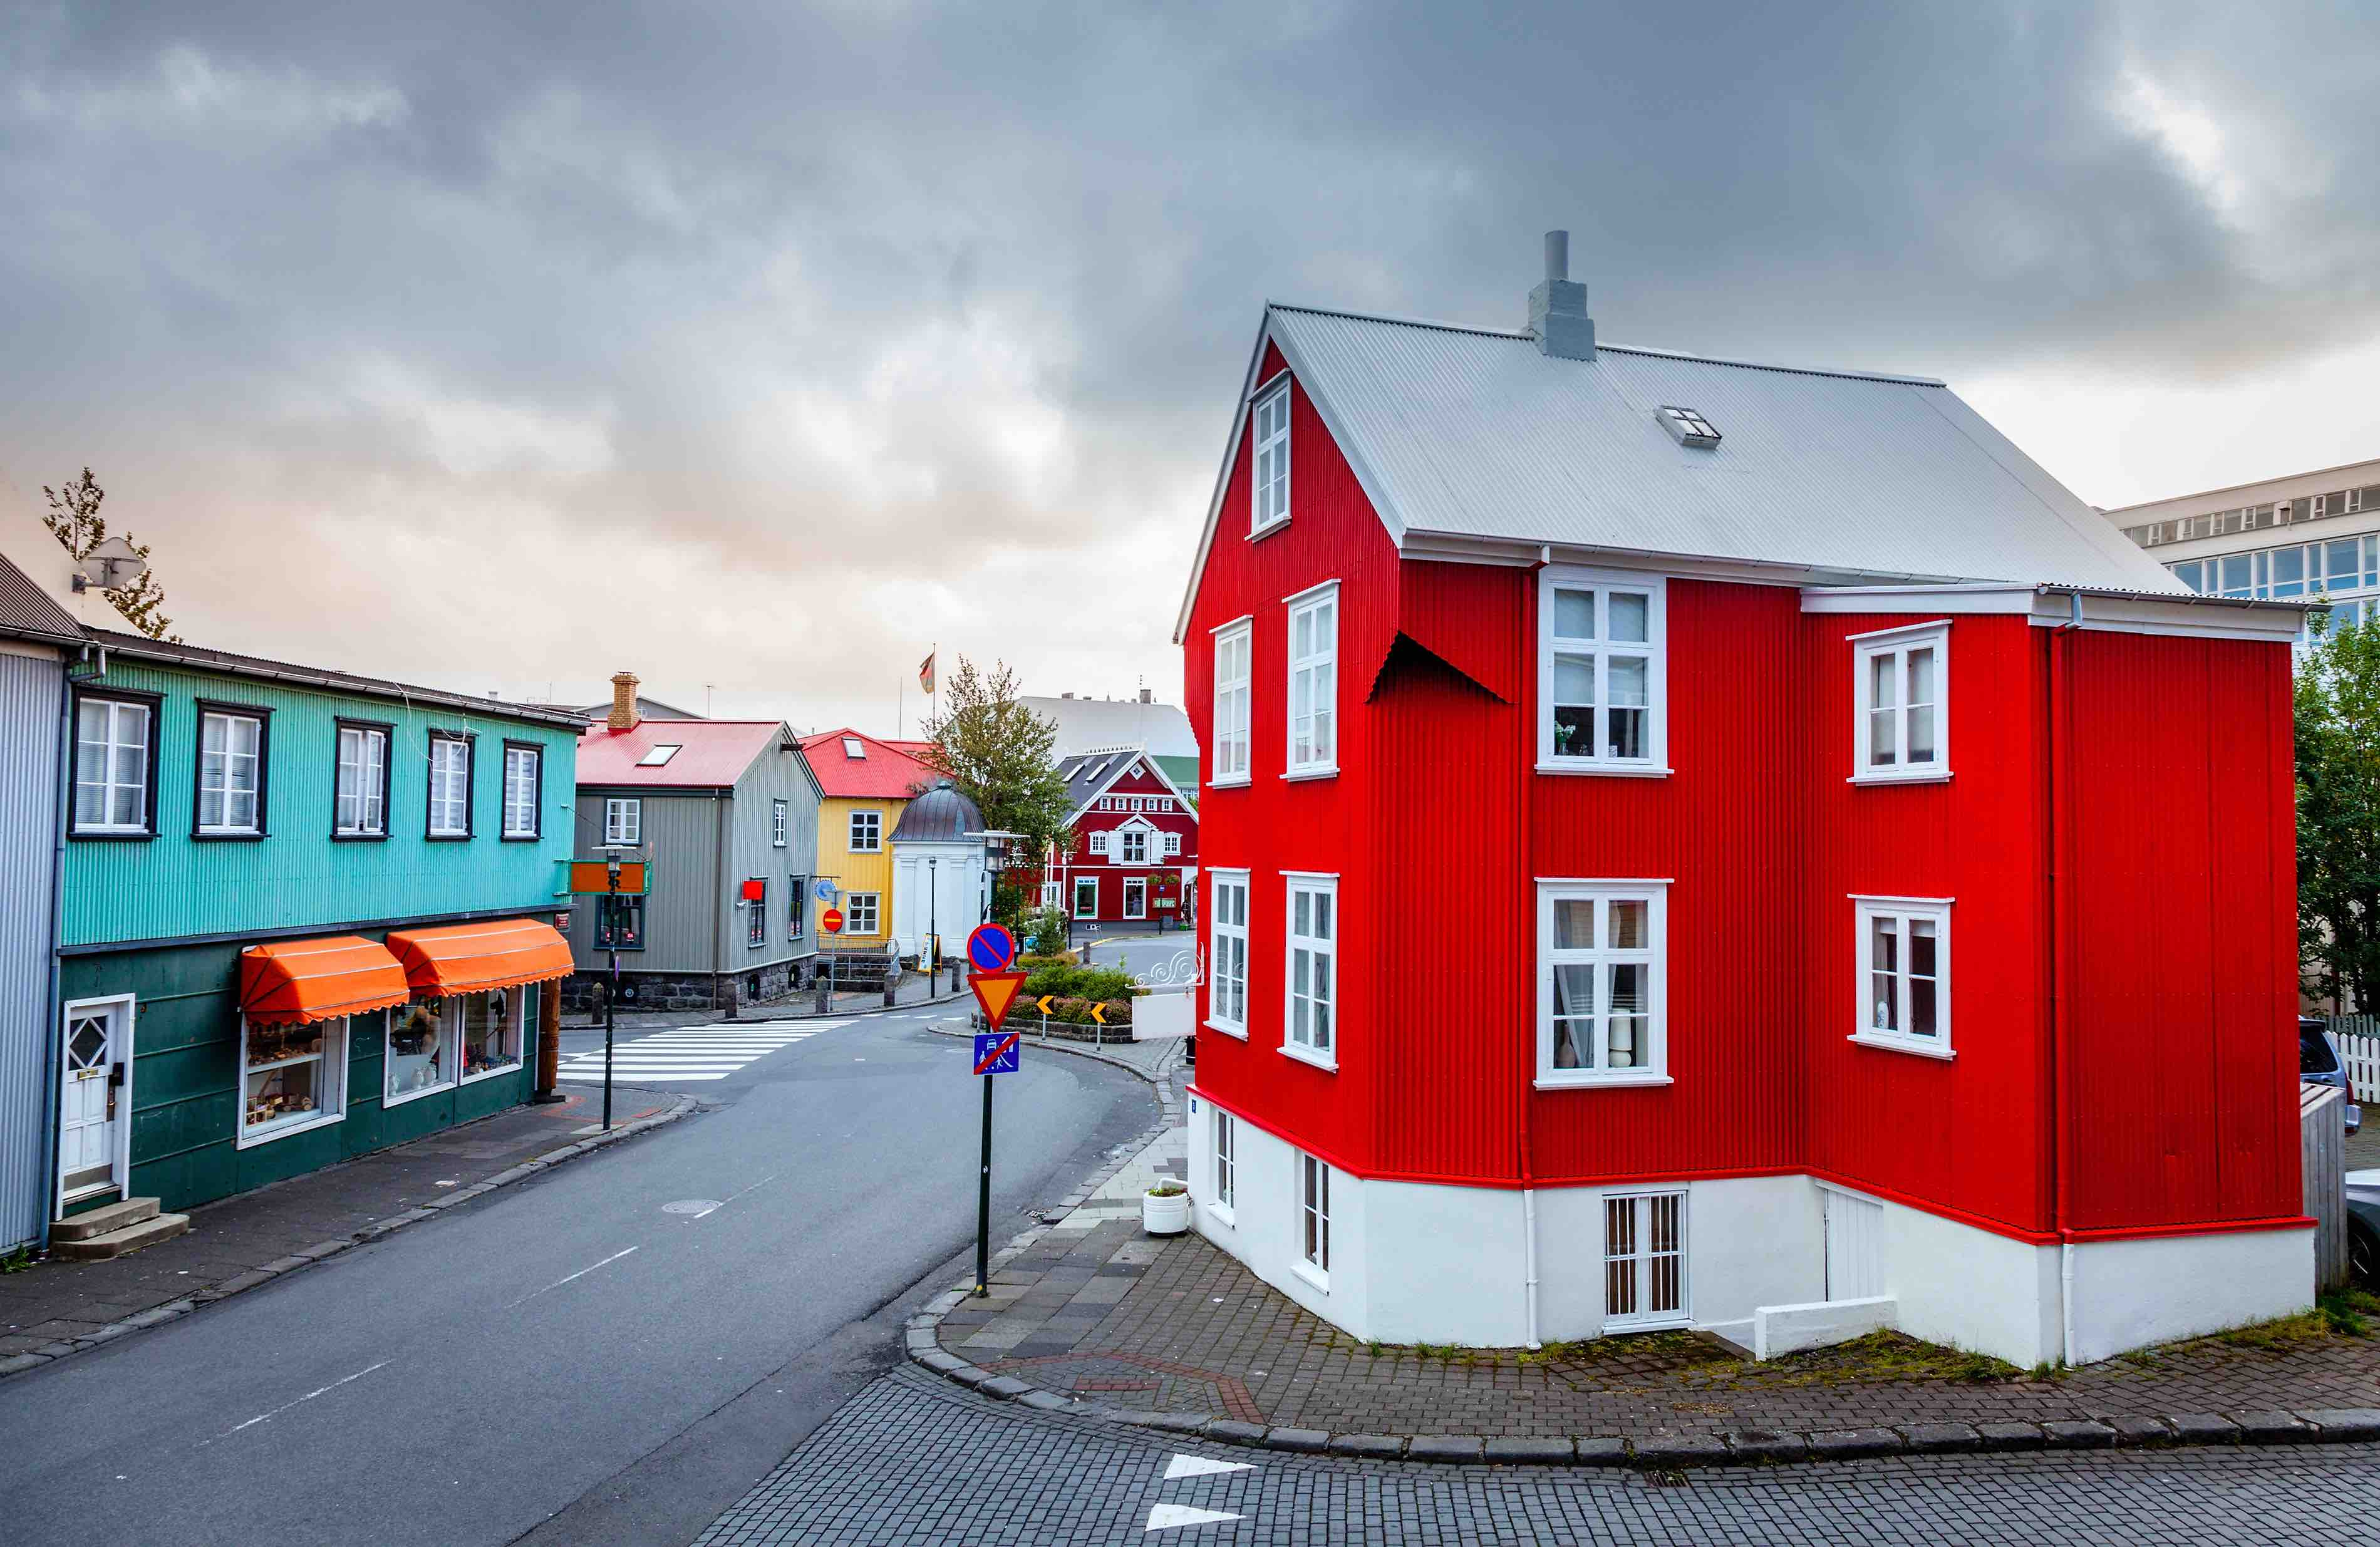 The colourful streets of Reykjavik